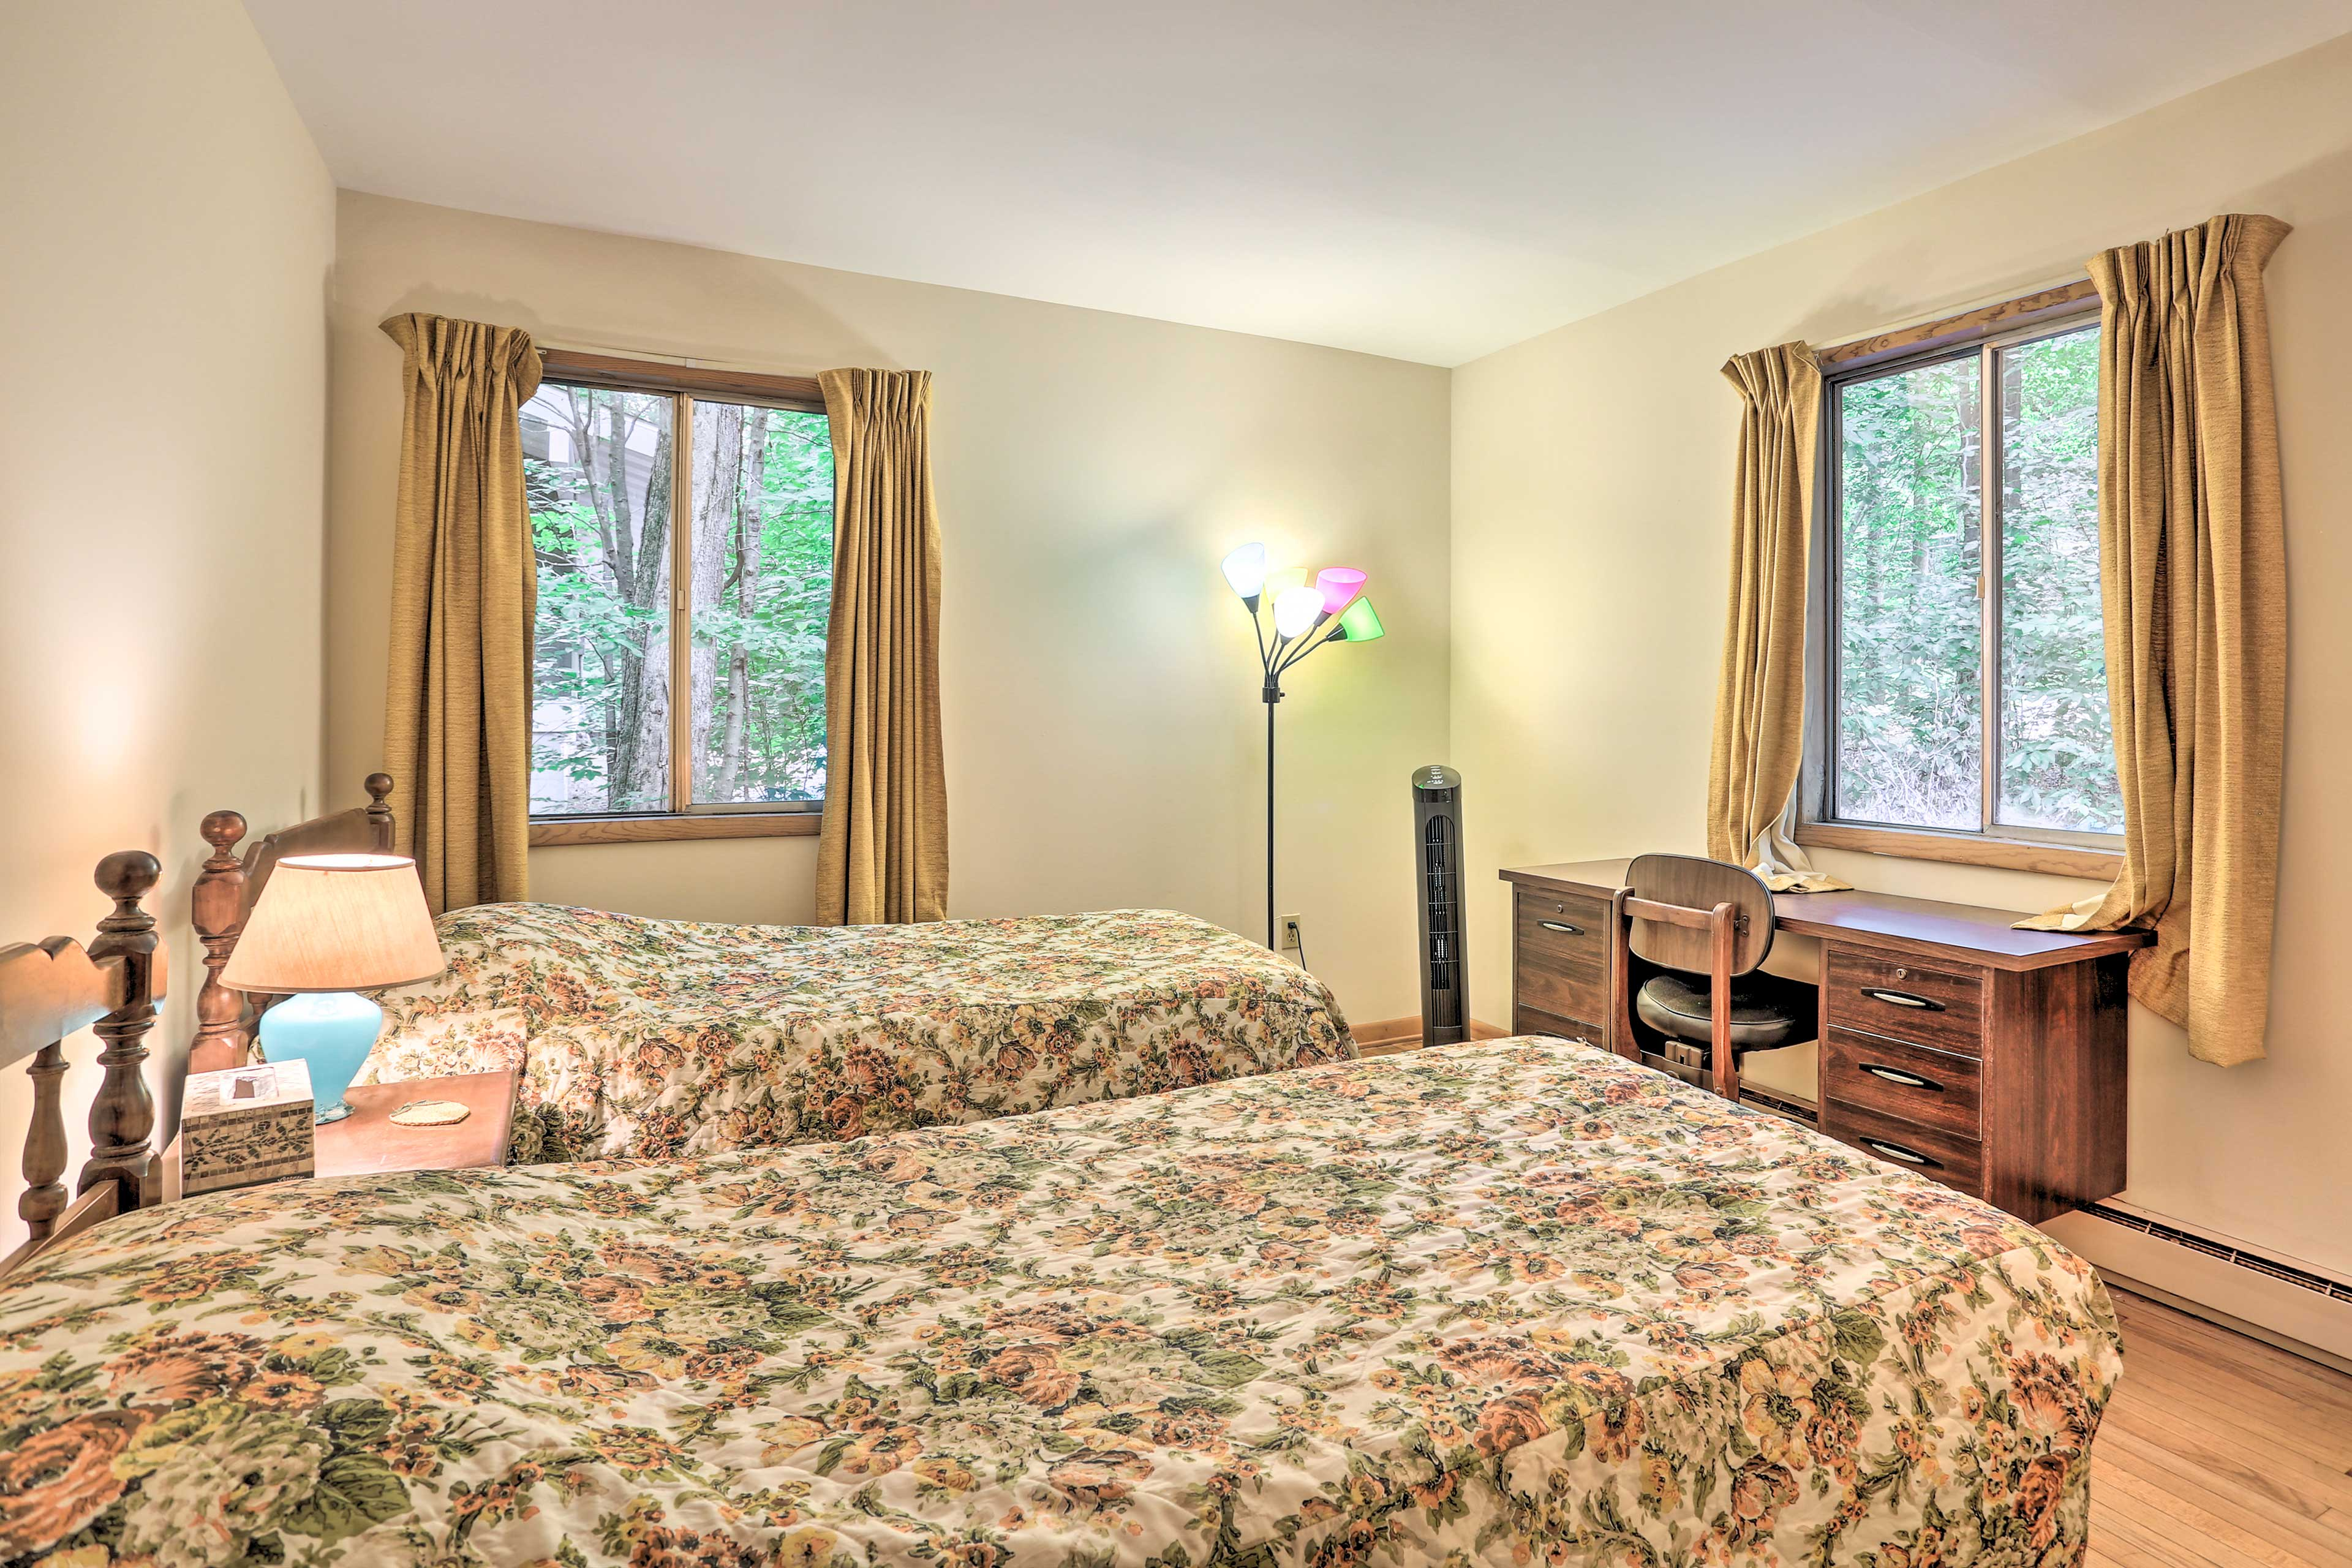 Take your pick of 2 twin-sized beds in bedroom 2.